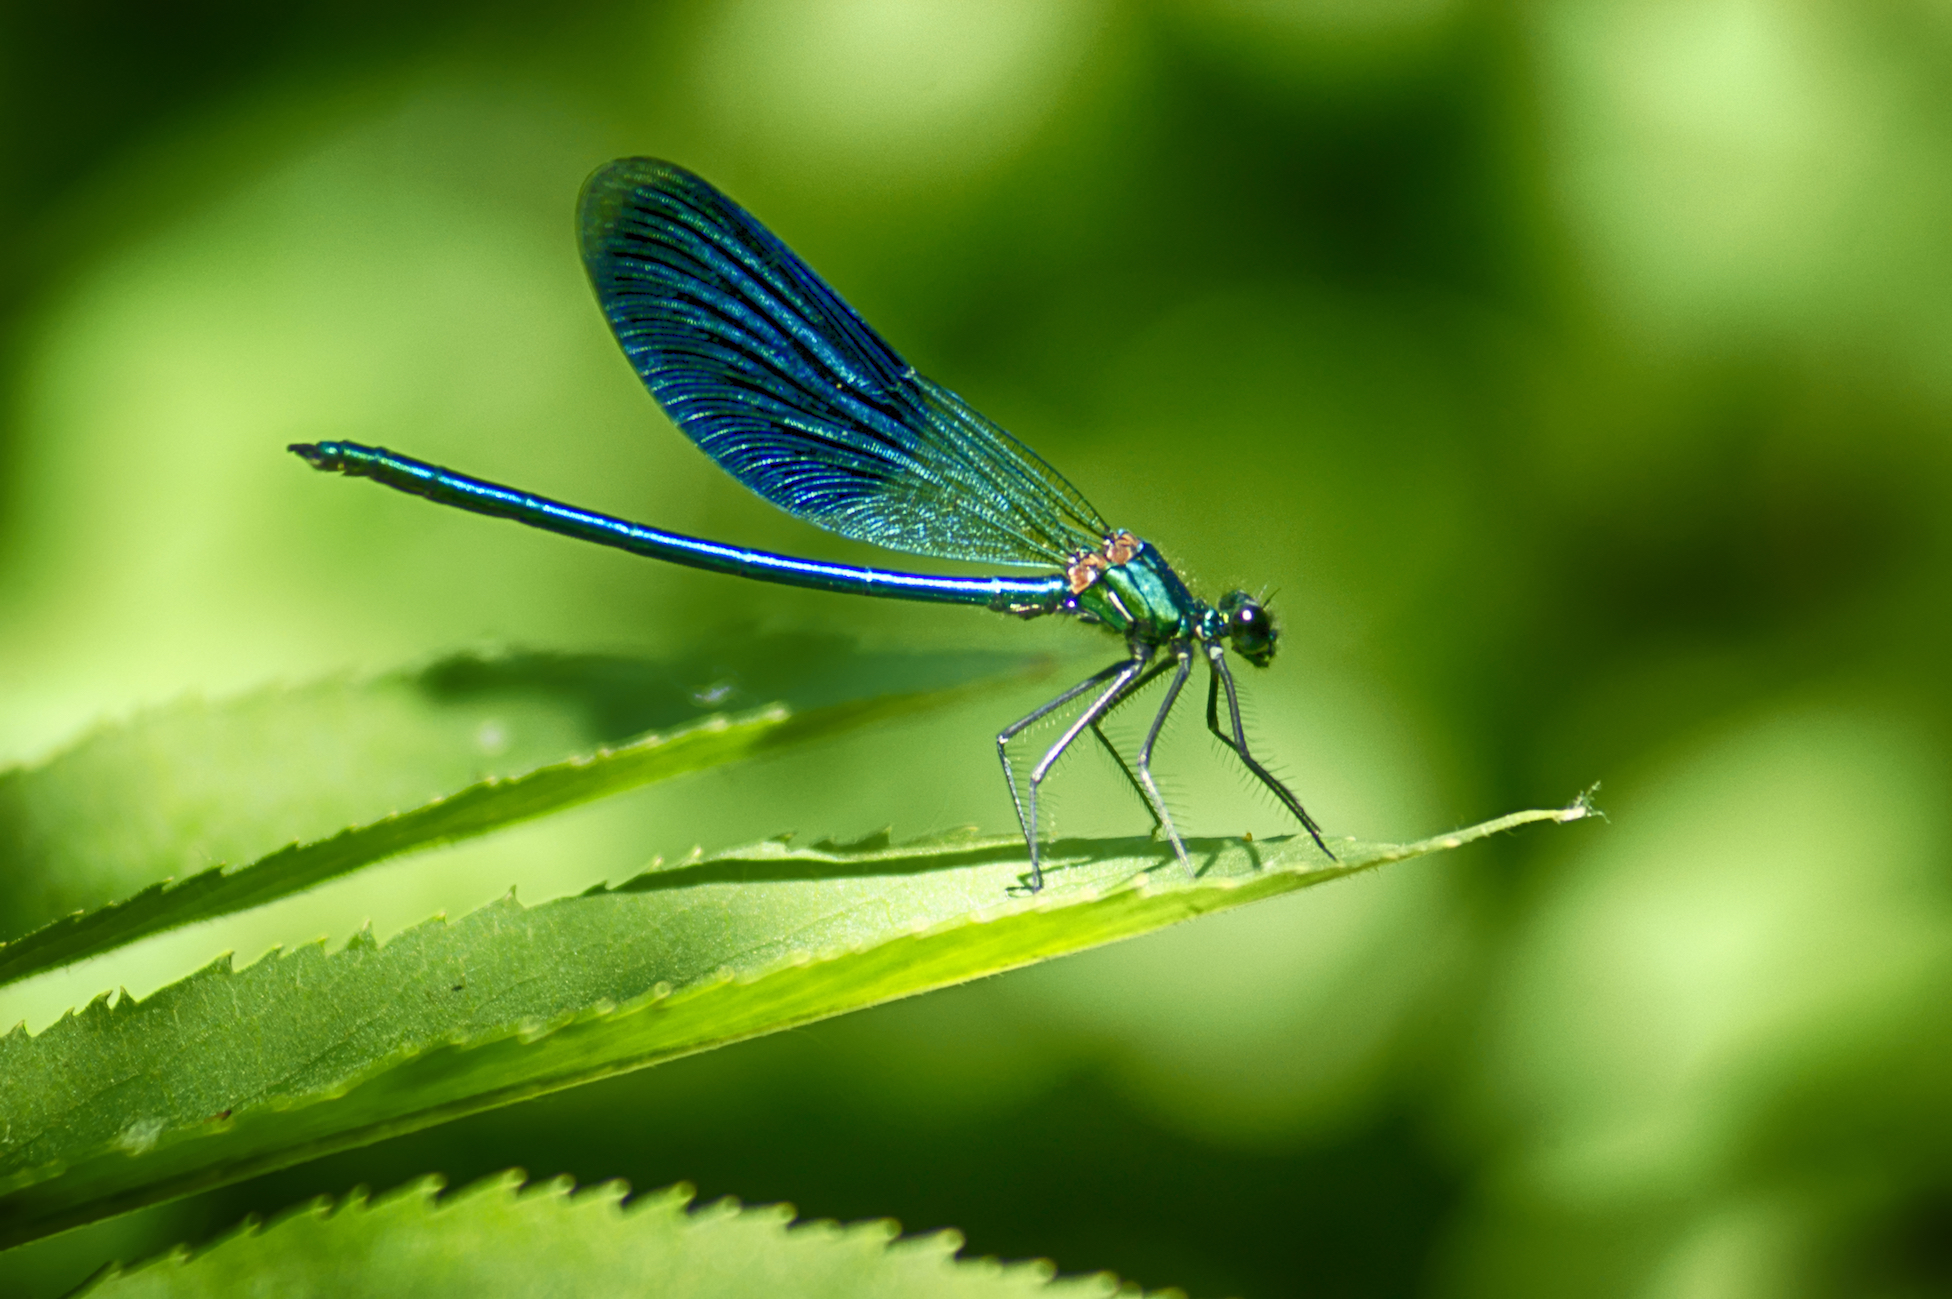 A new study reports that female dragonflies have a not-so-subtle way of getting rid of unwanted suitors: they pretend to be dead.